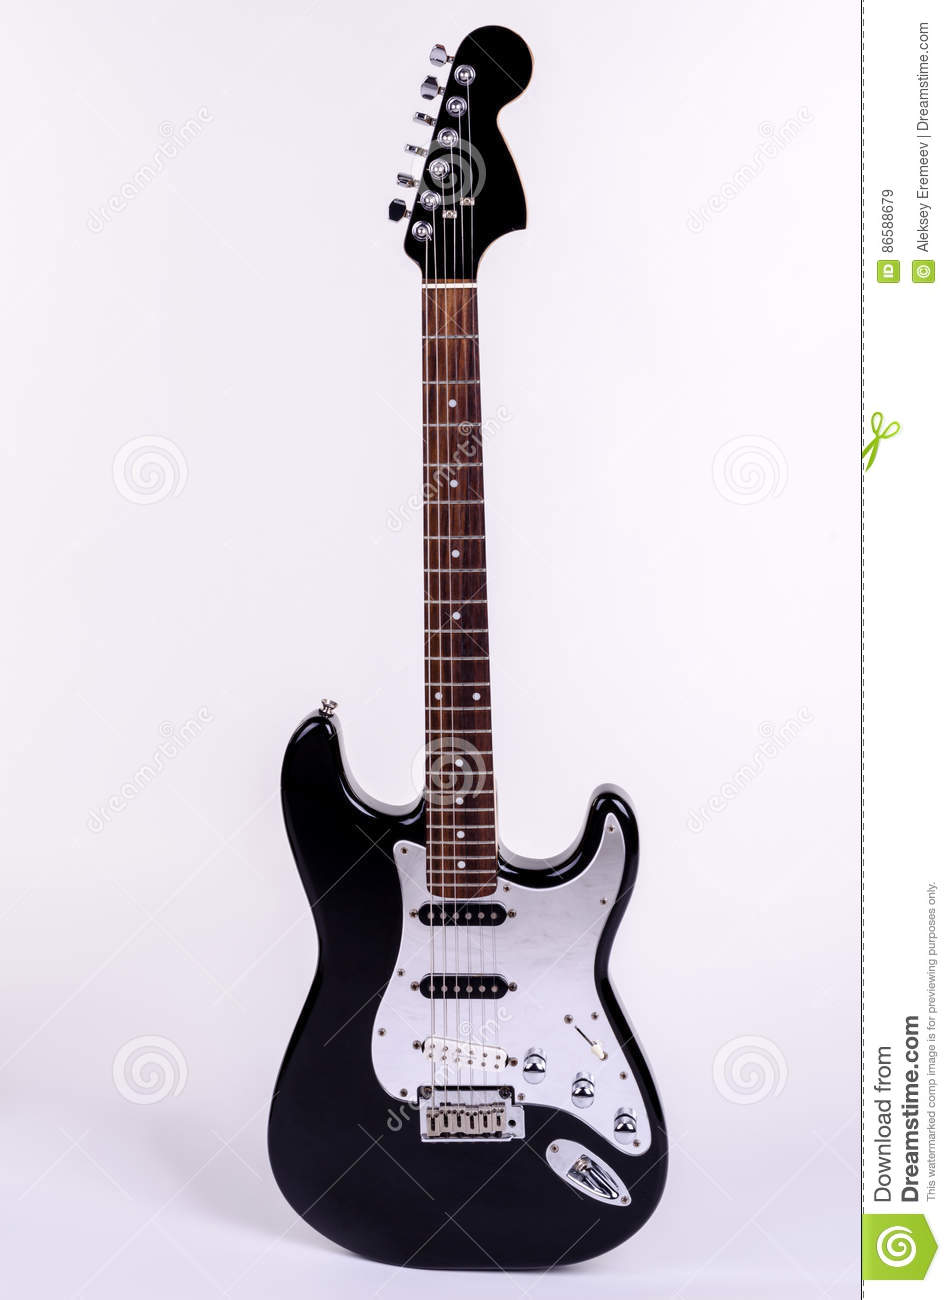 The classical form of black and white electric guitar standing upright with wooden maple neck